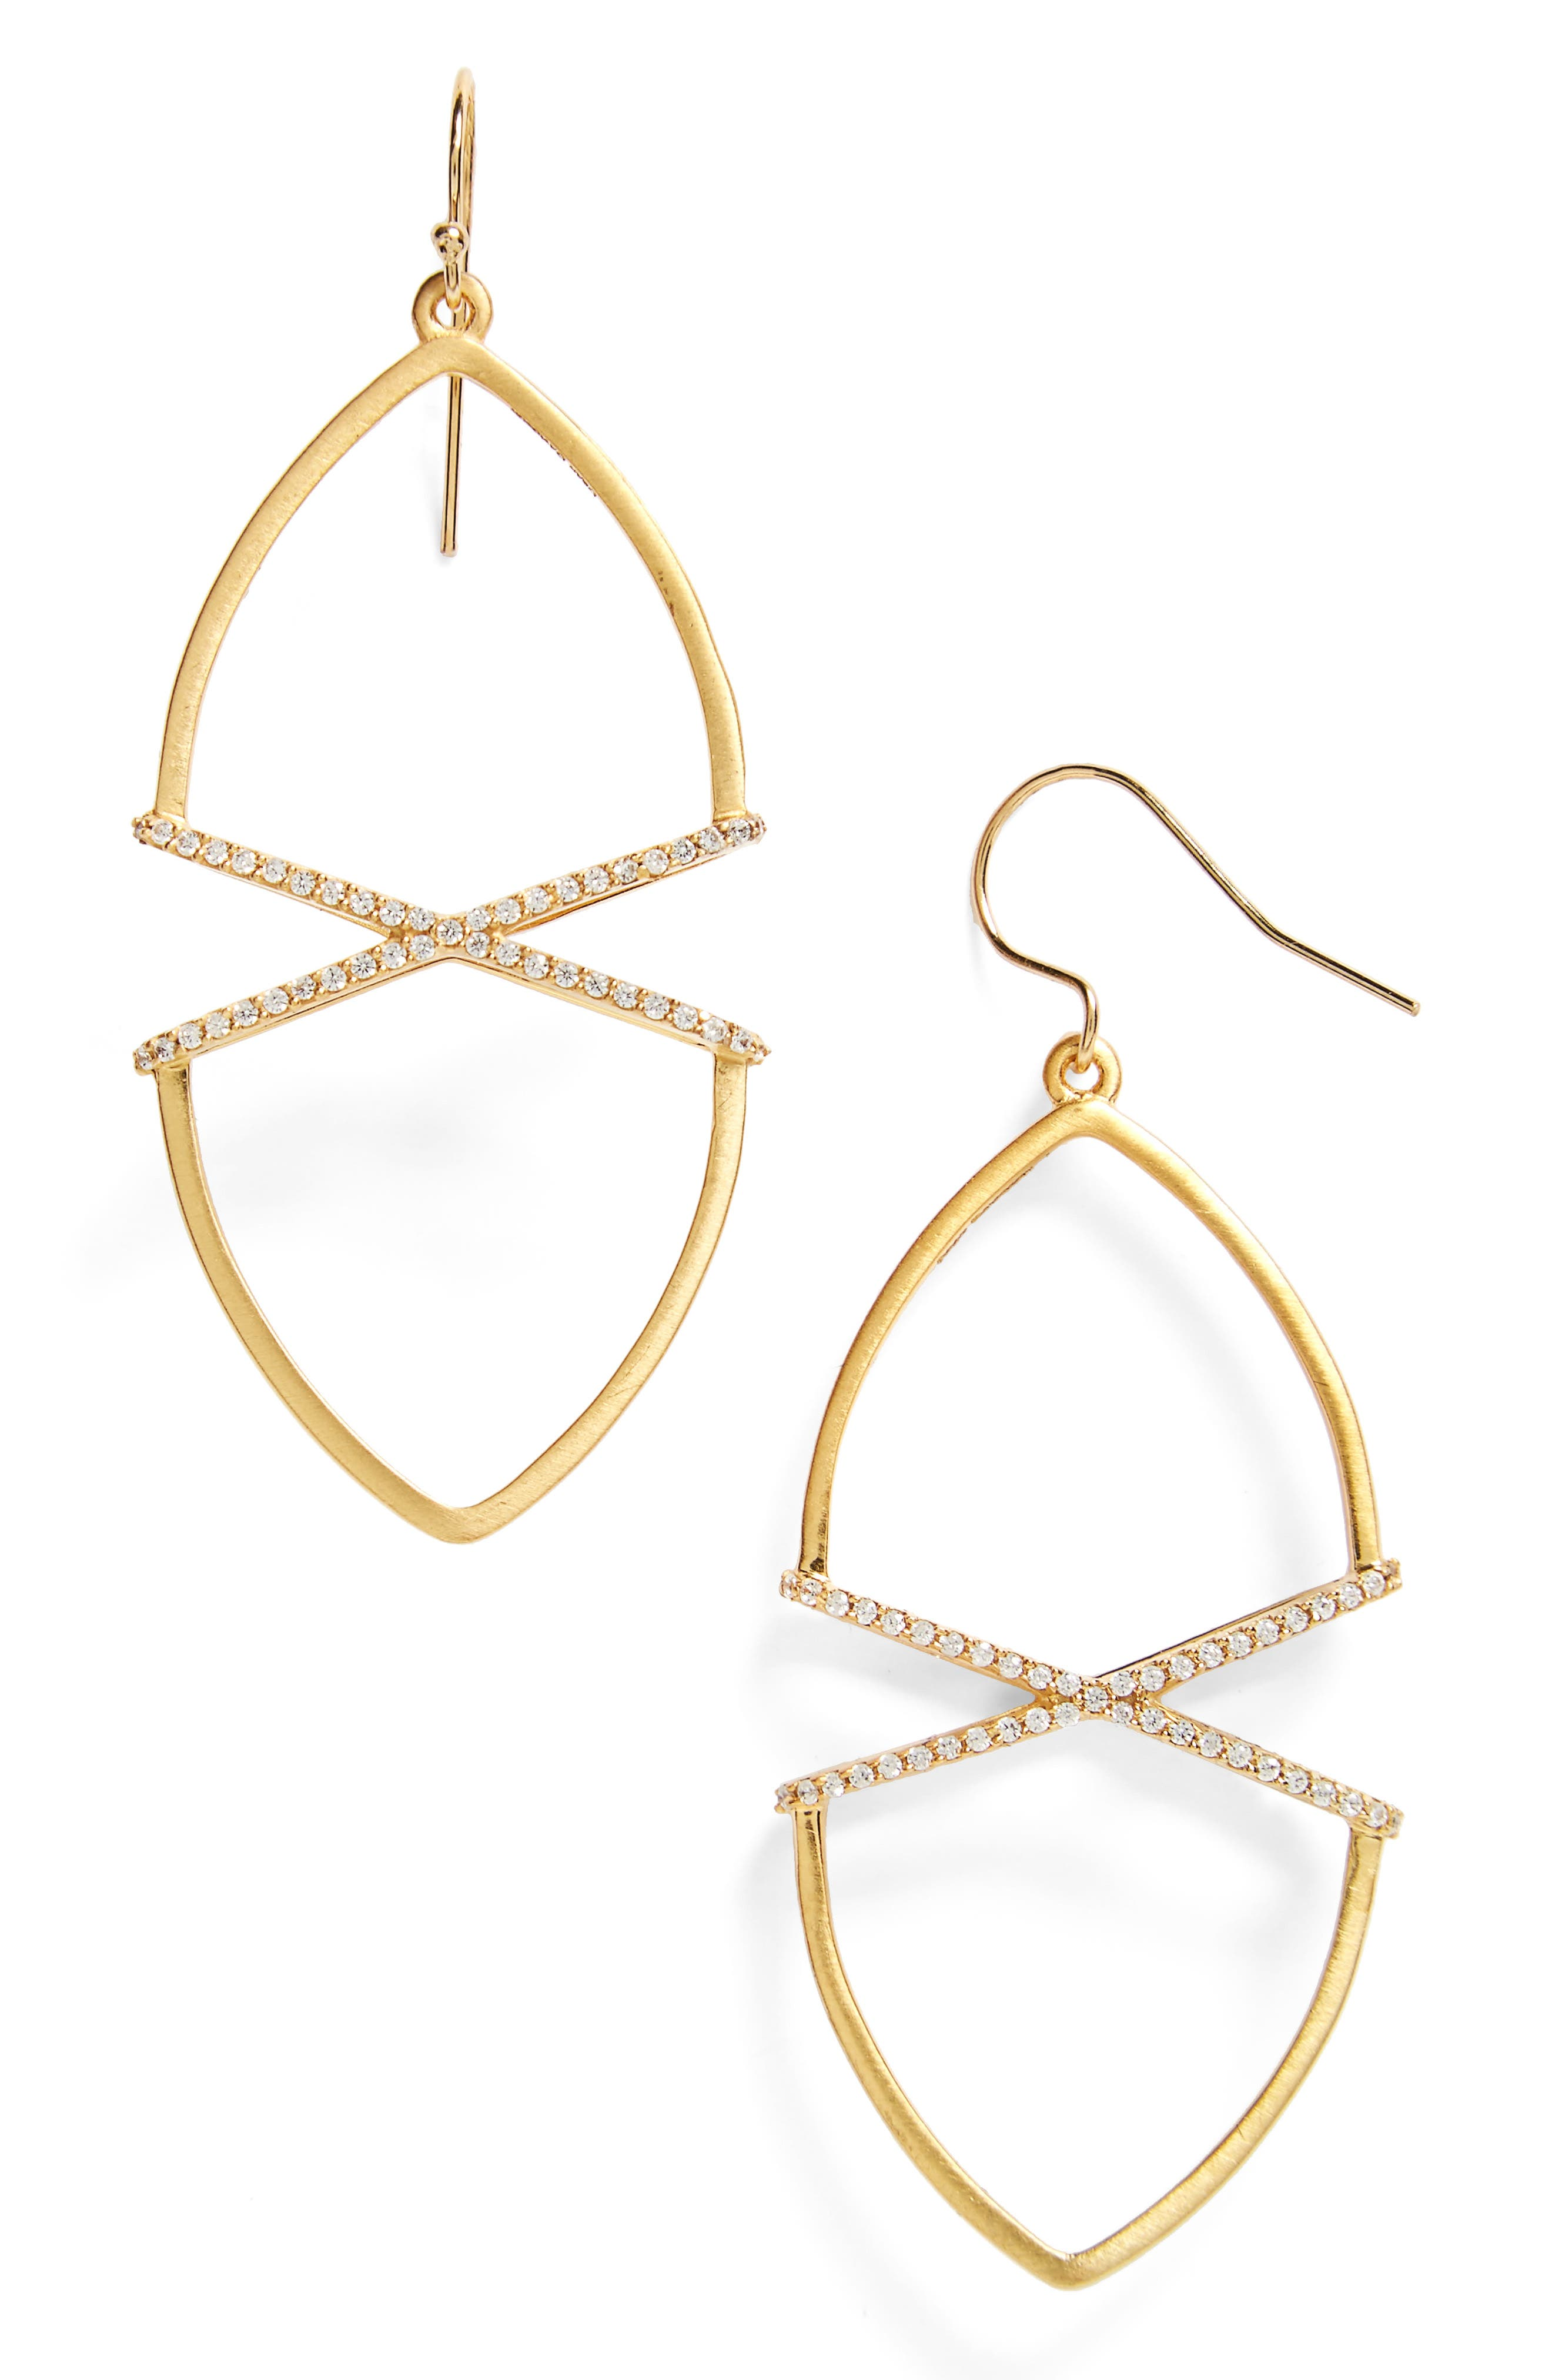 DEAN DAVIDSON Infinite Drop Earrings